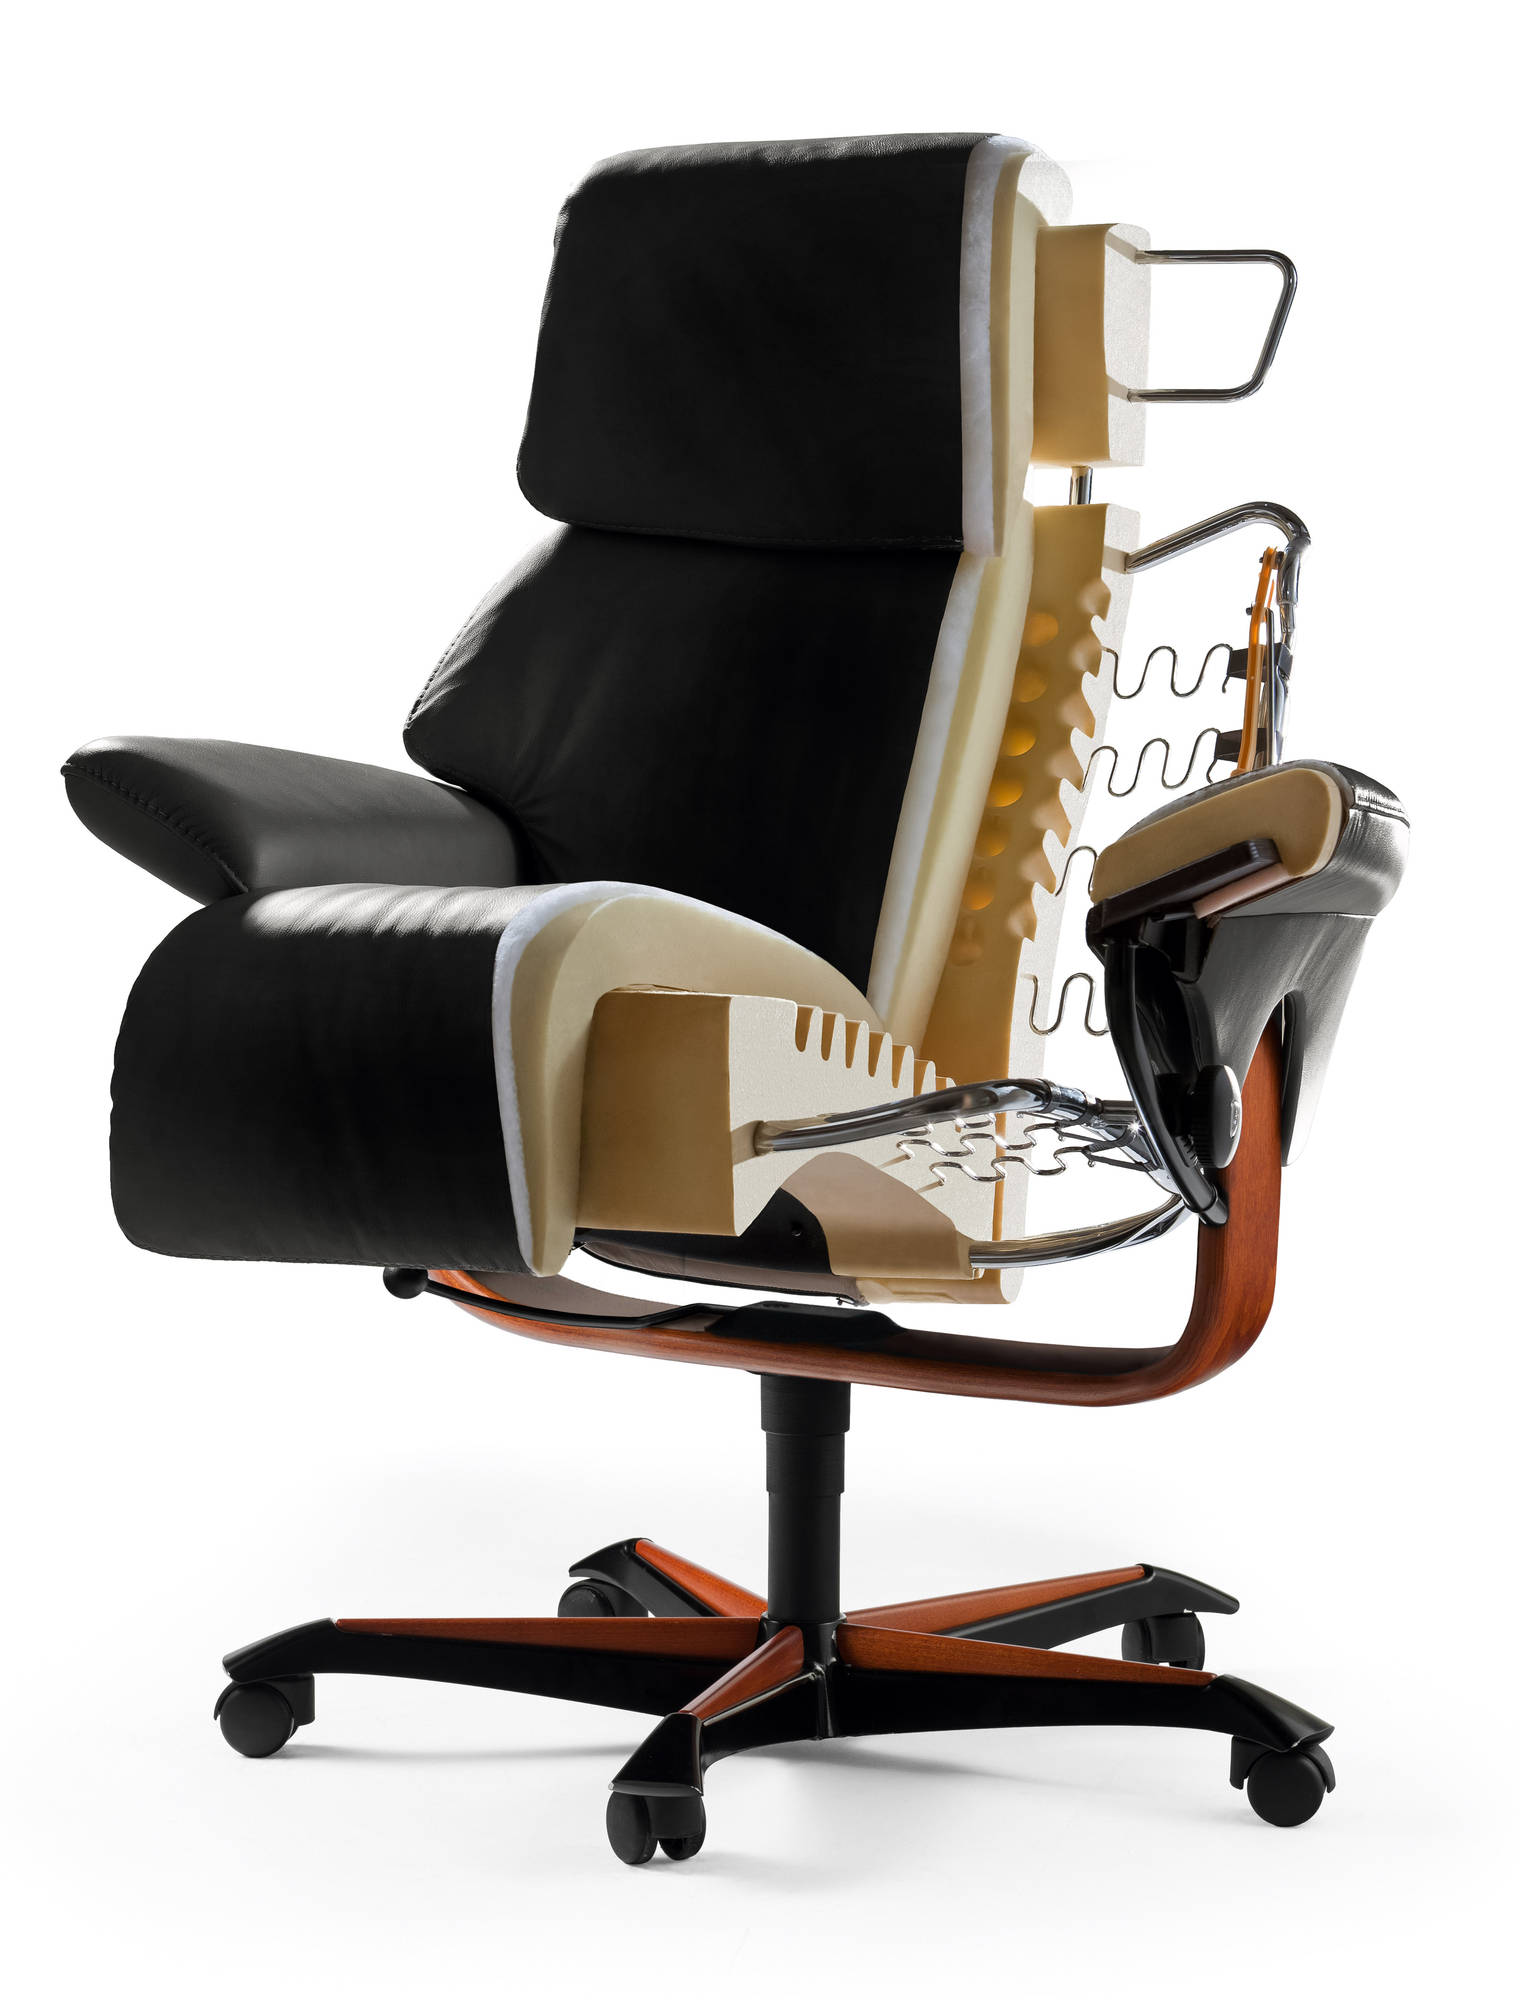 Office - Stressless Technology Revealed